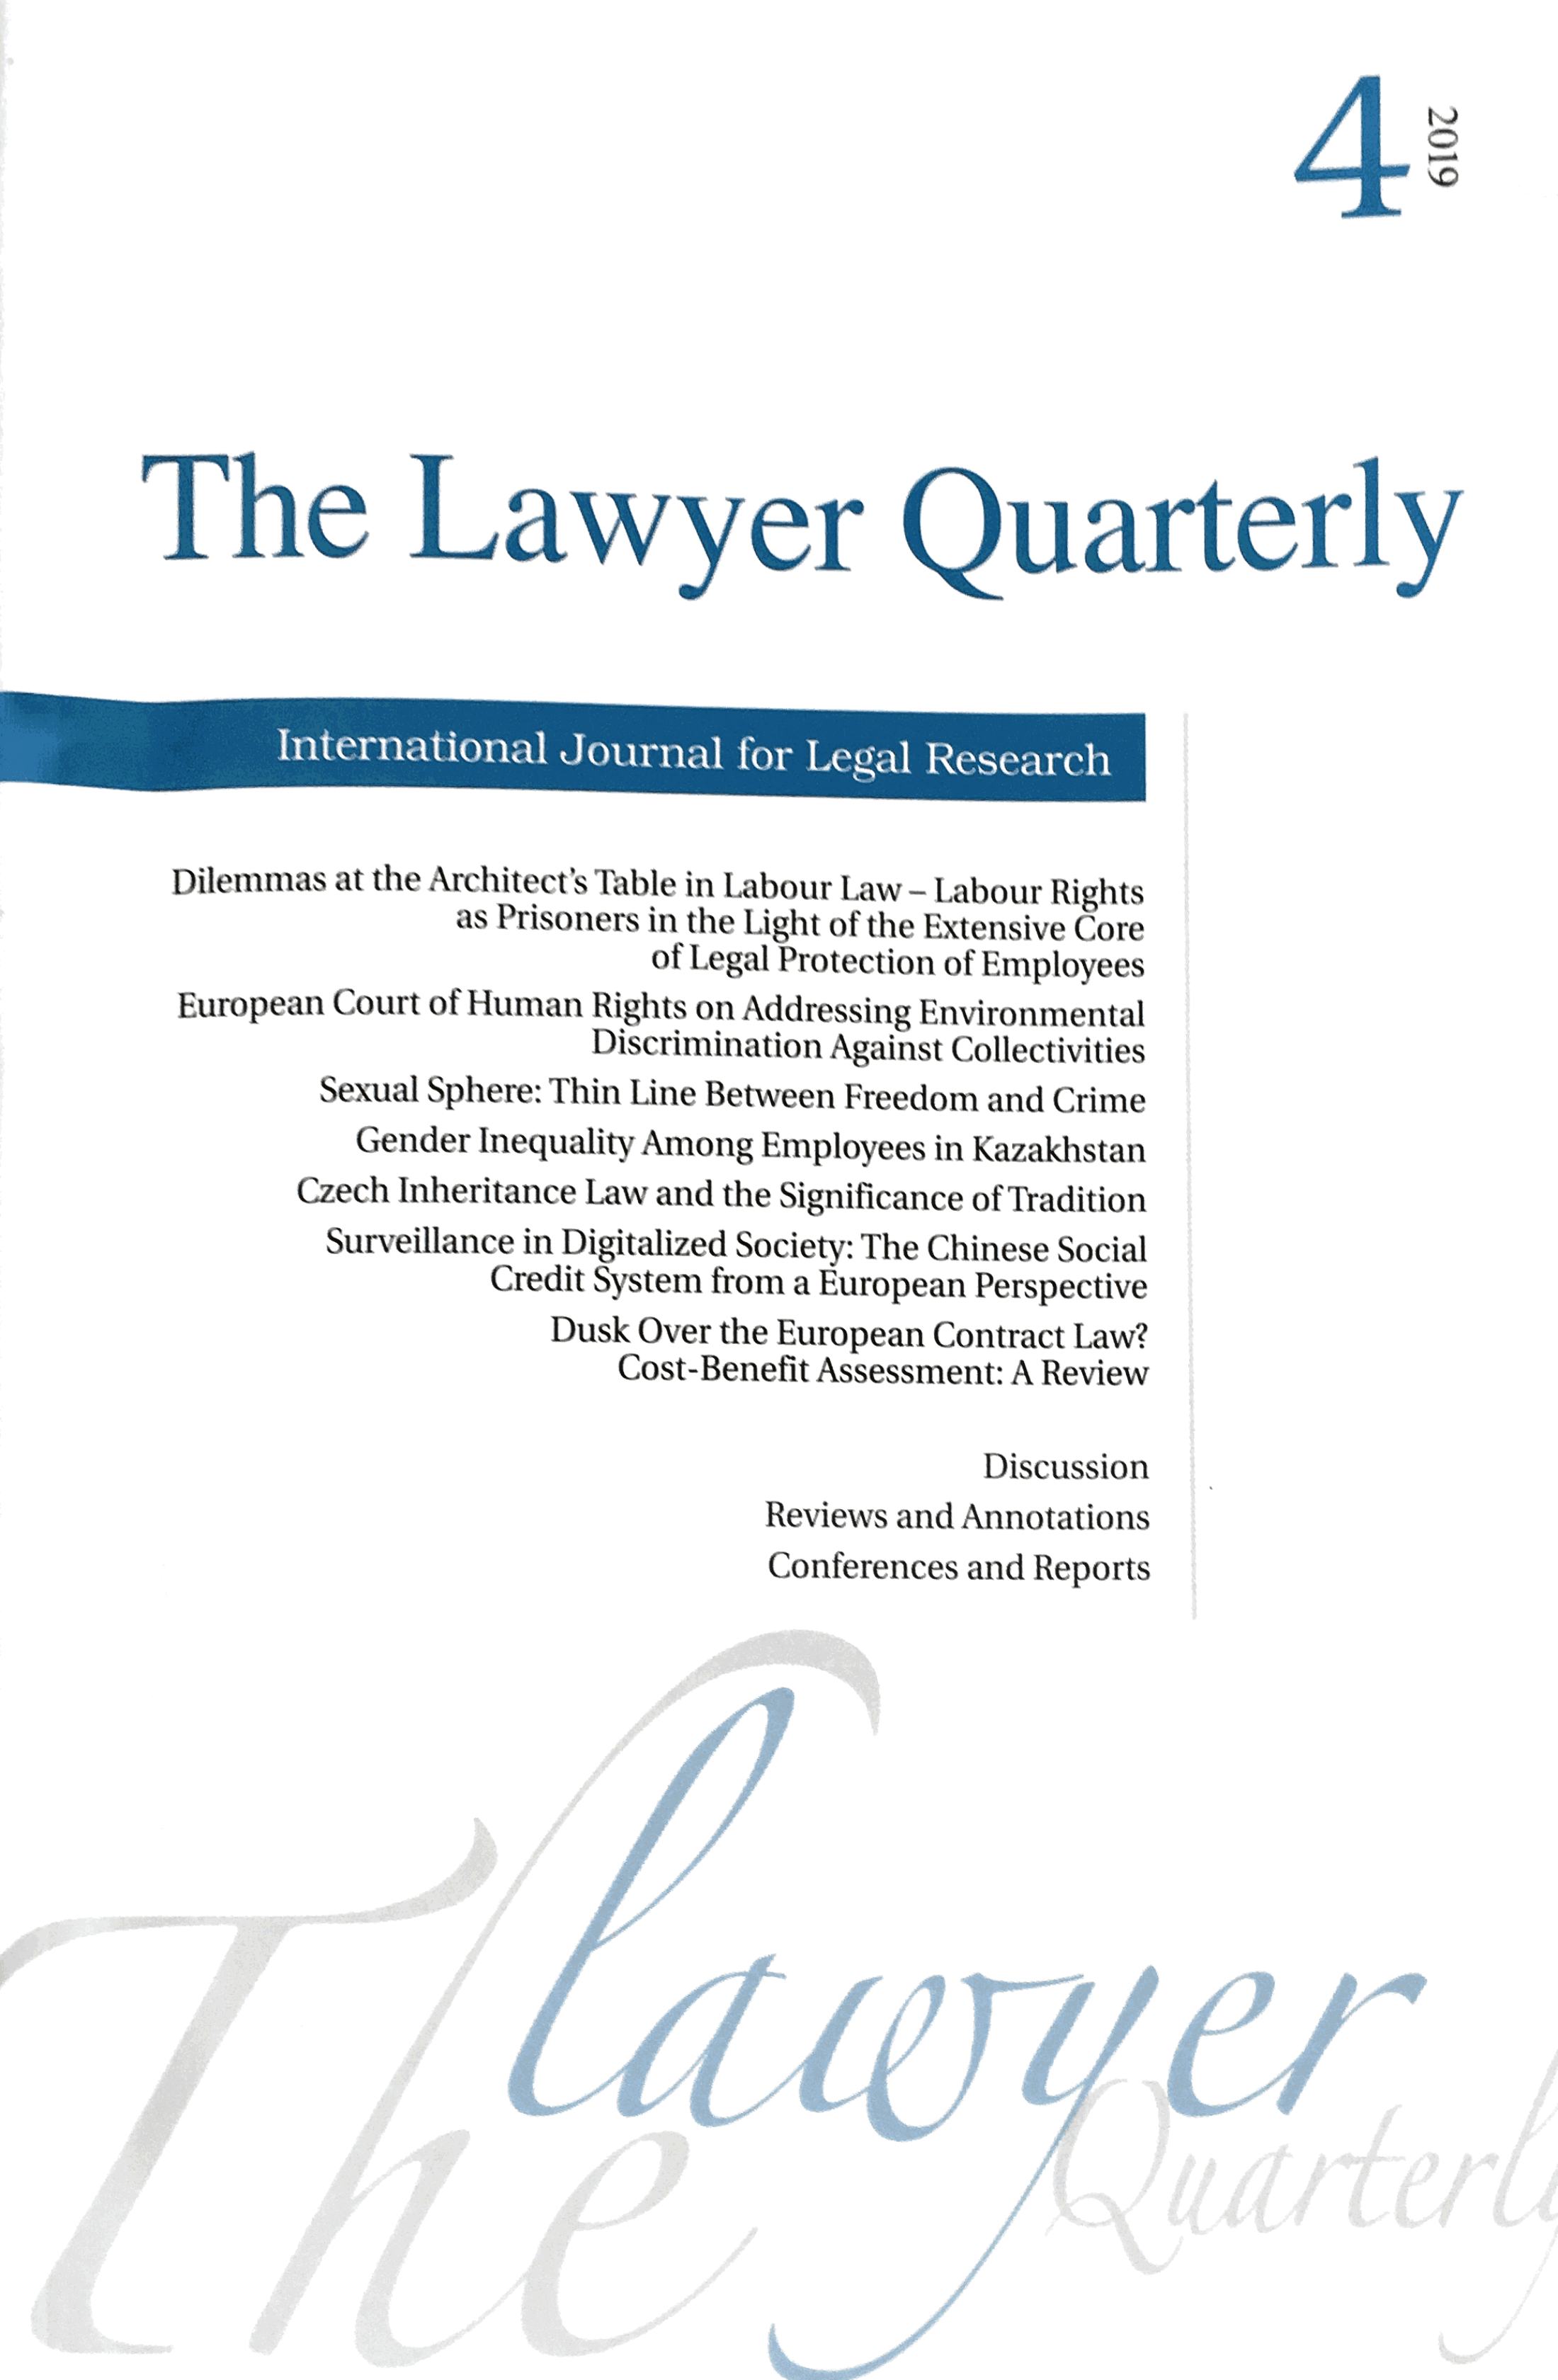 Information about PSEFS published in The Lawyer Quarterly